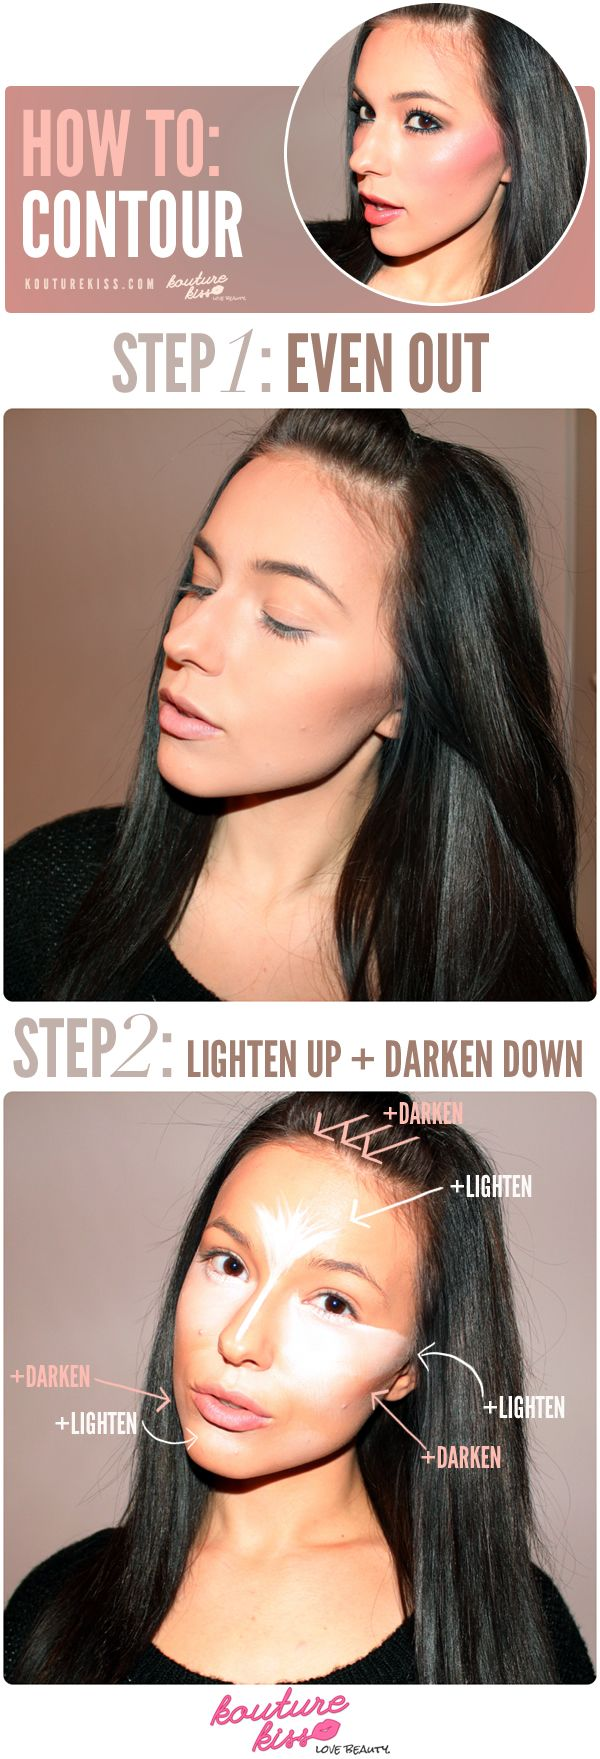 How To: Contour - Kouturekiss - Your One Stop Everything Beauty Spot